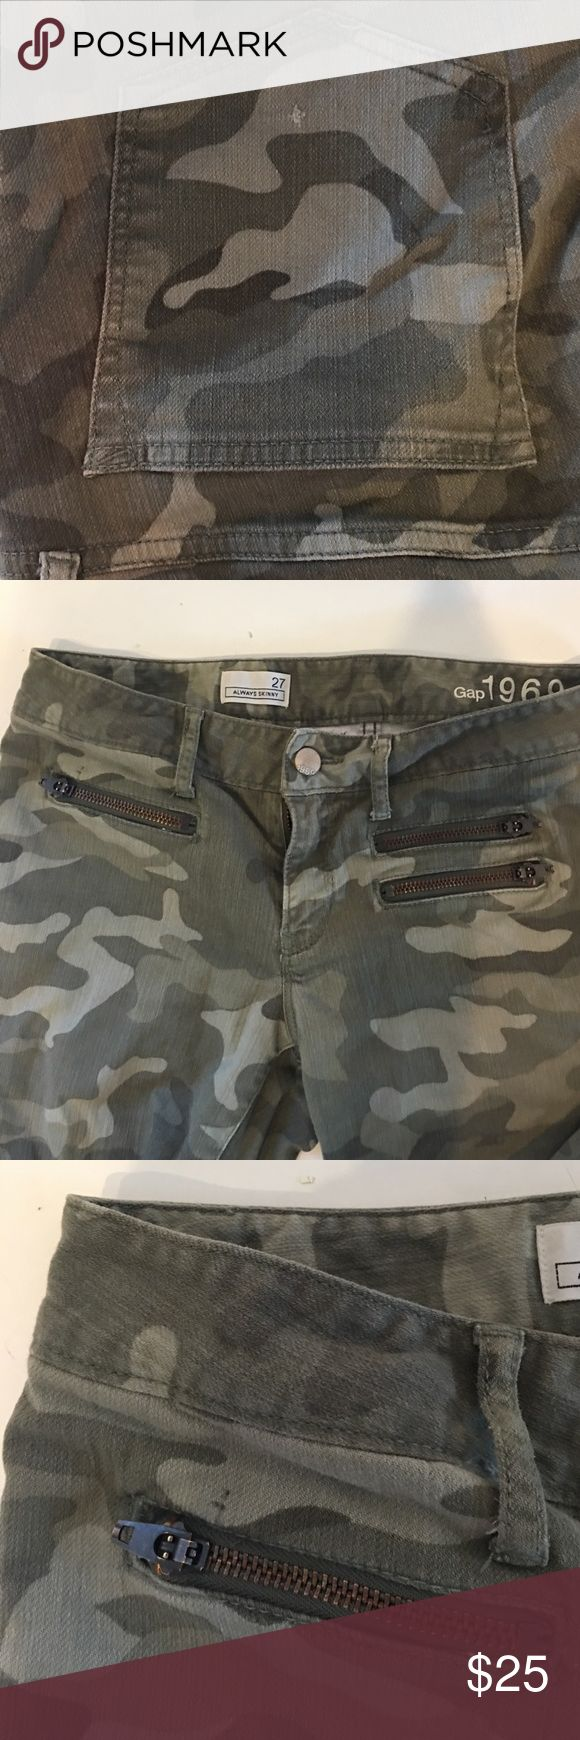 Army Camouflage Skinny Jeans Minor snag in right back pocket and on left shin. Small pen mark above left pocket zipper. Size 27. Comfortable and flattering. GAP Jeans Skinny